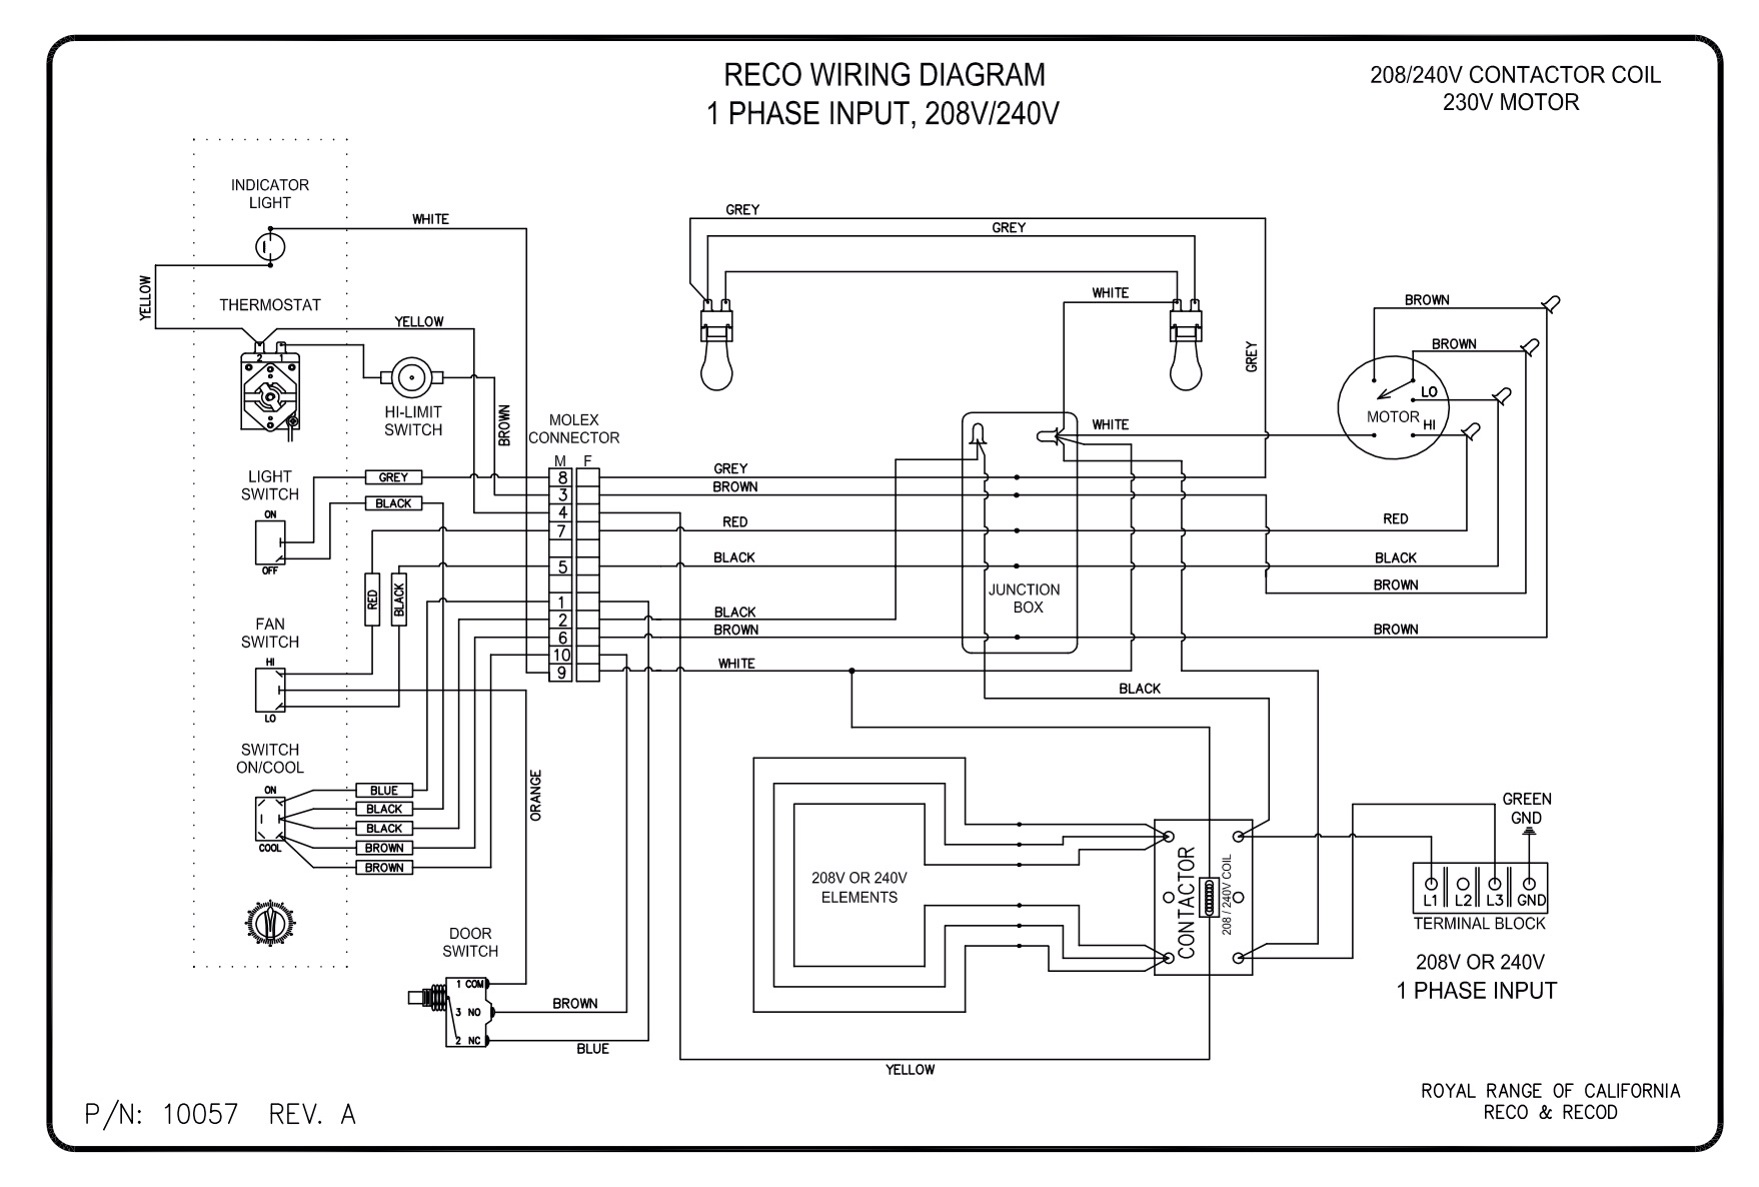 hight resolution of wiring diagrams royal range of californiawiring diagram for oven 4